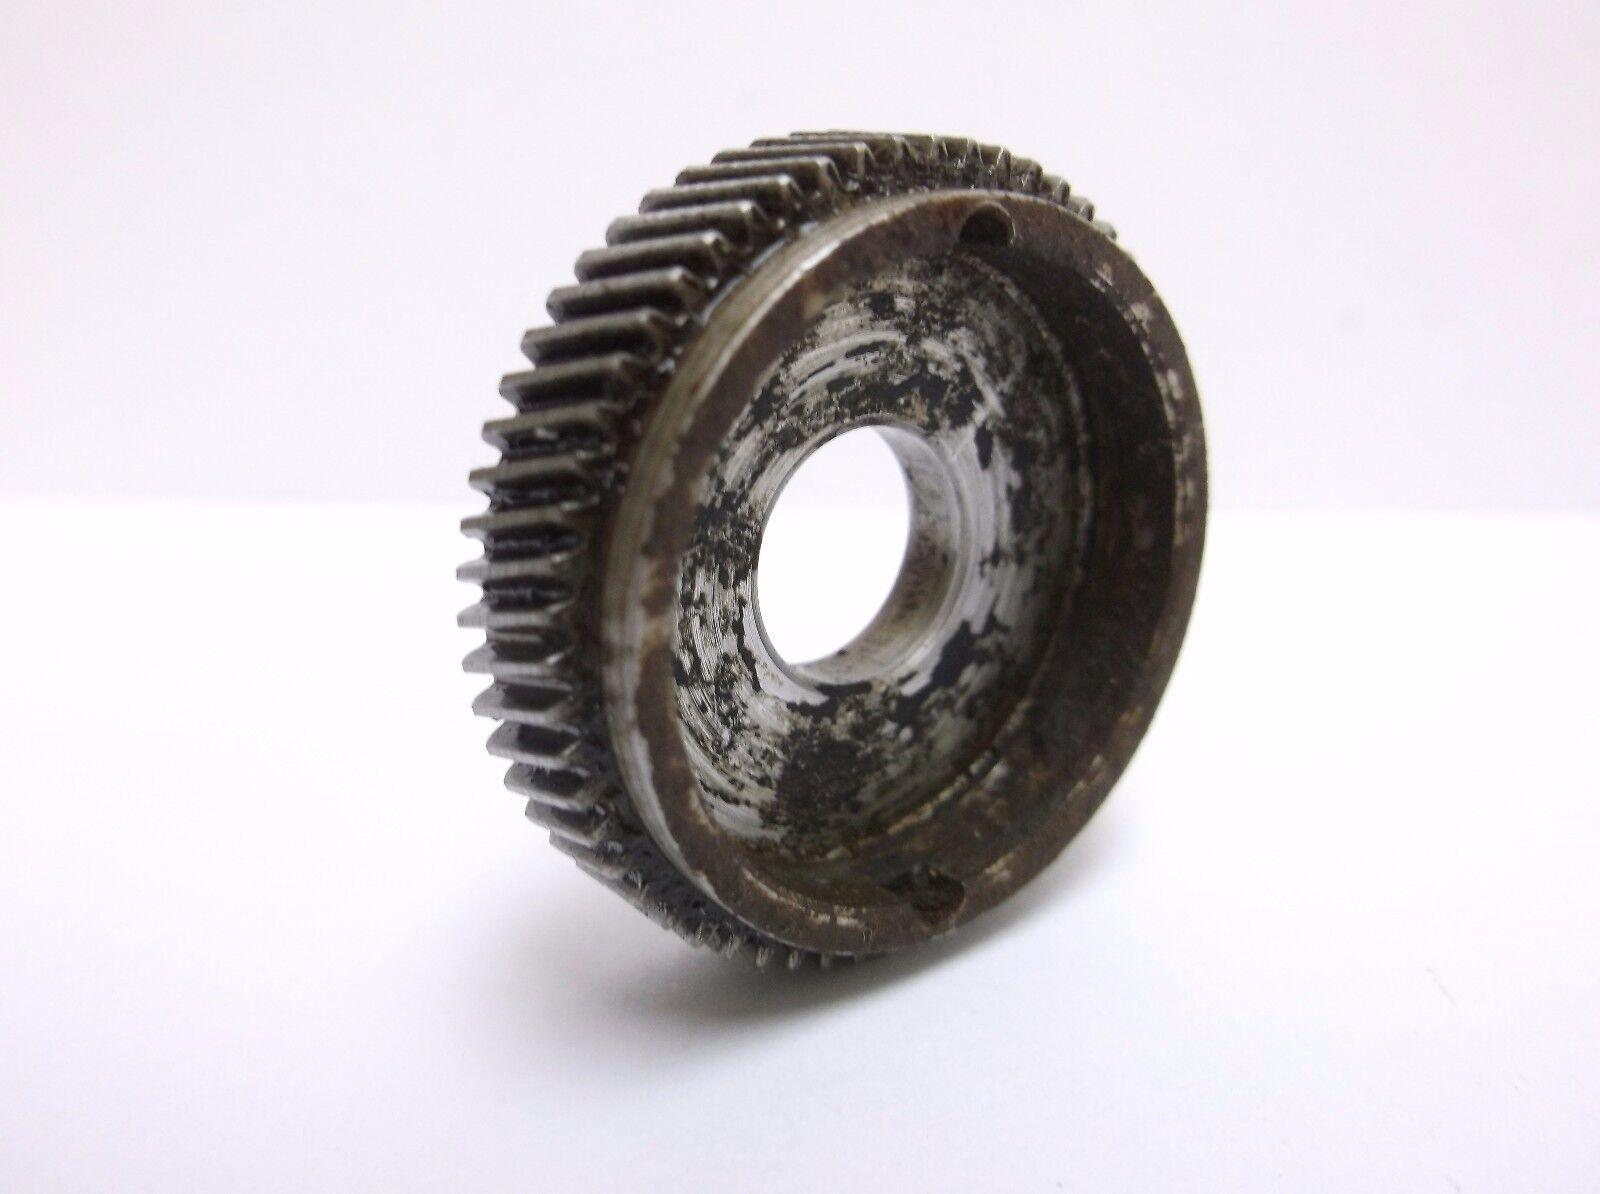 USED NEWELL BIG GAME REEL PART - S 454 5 - Main Gear  A